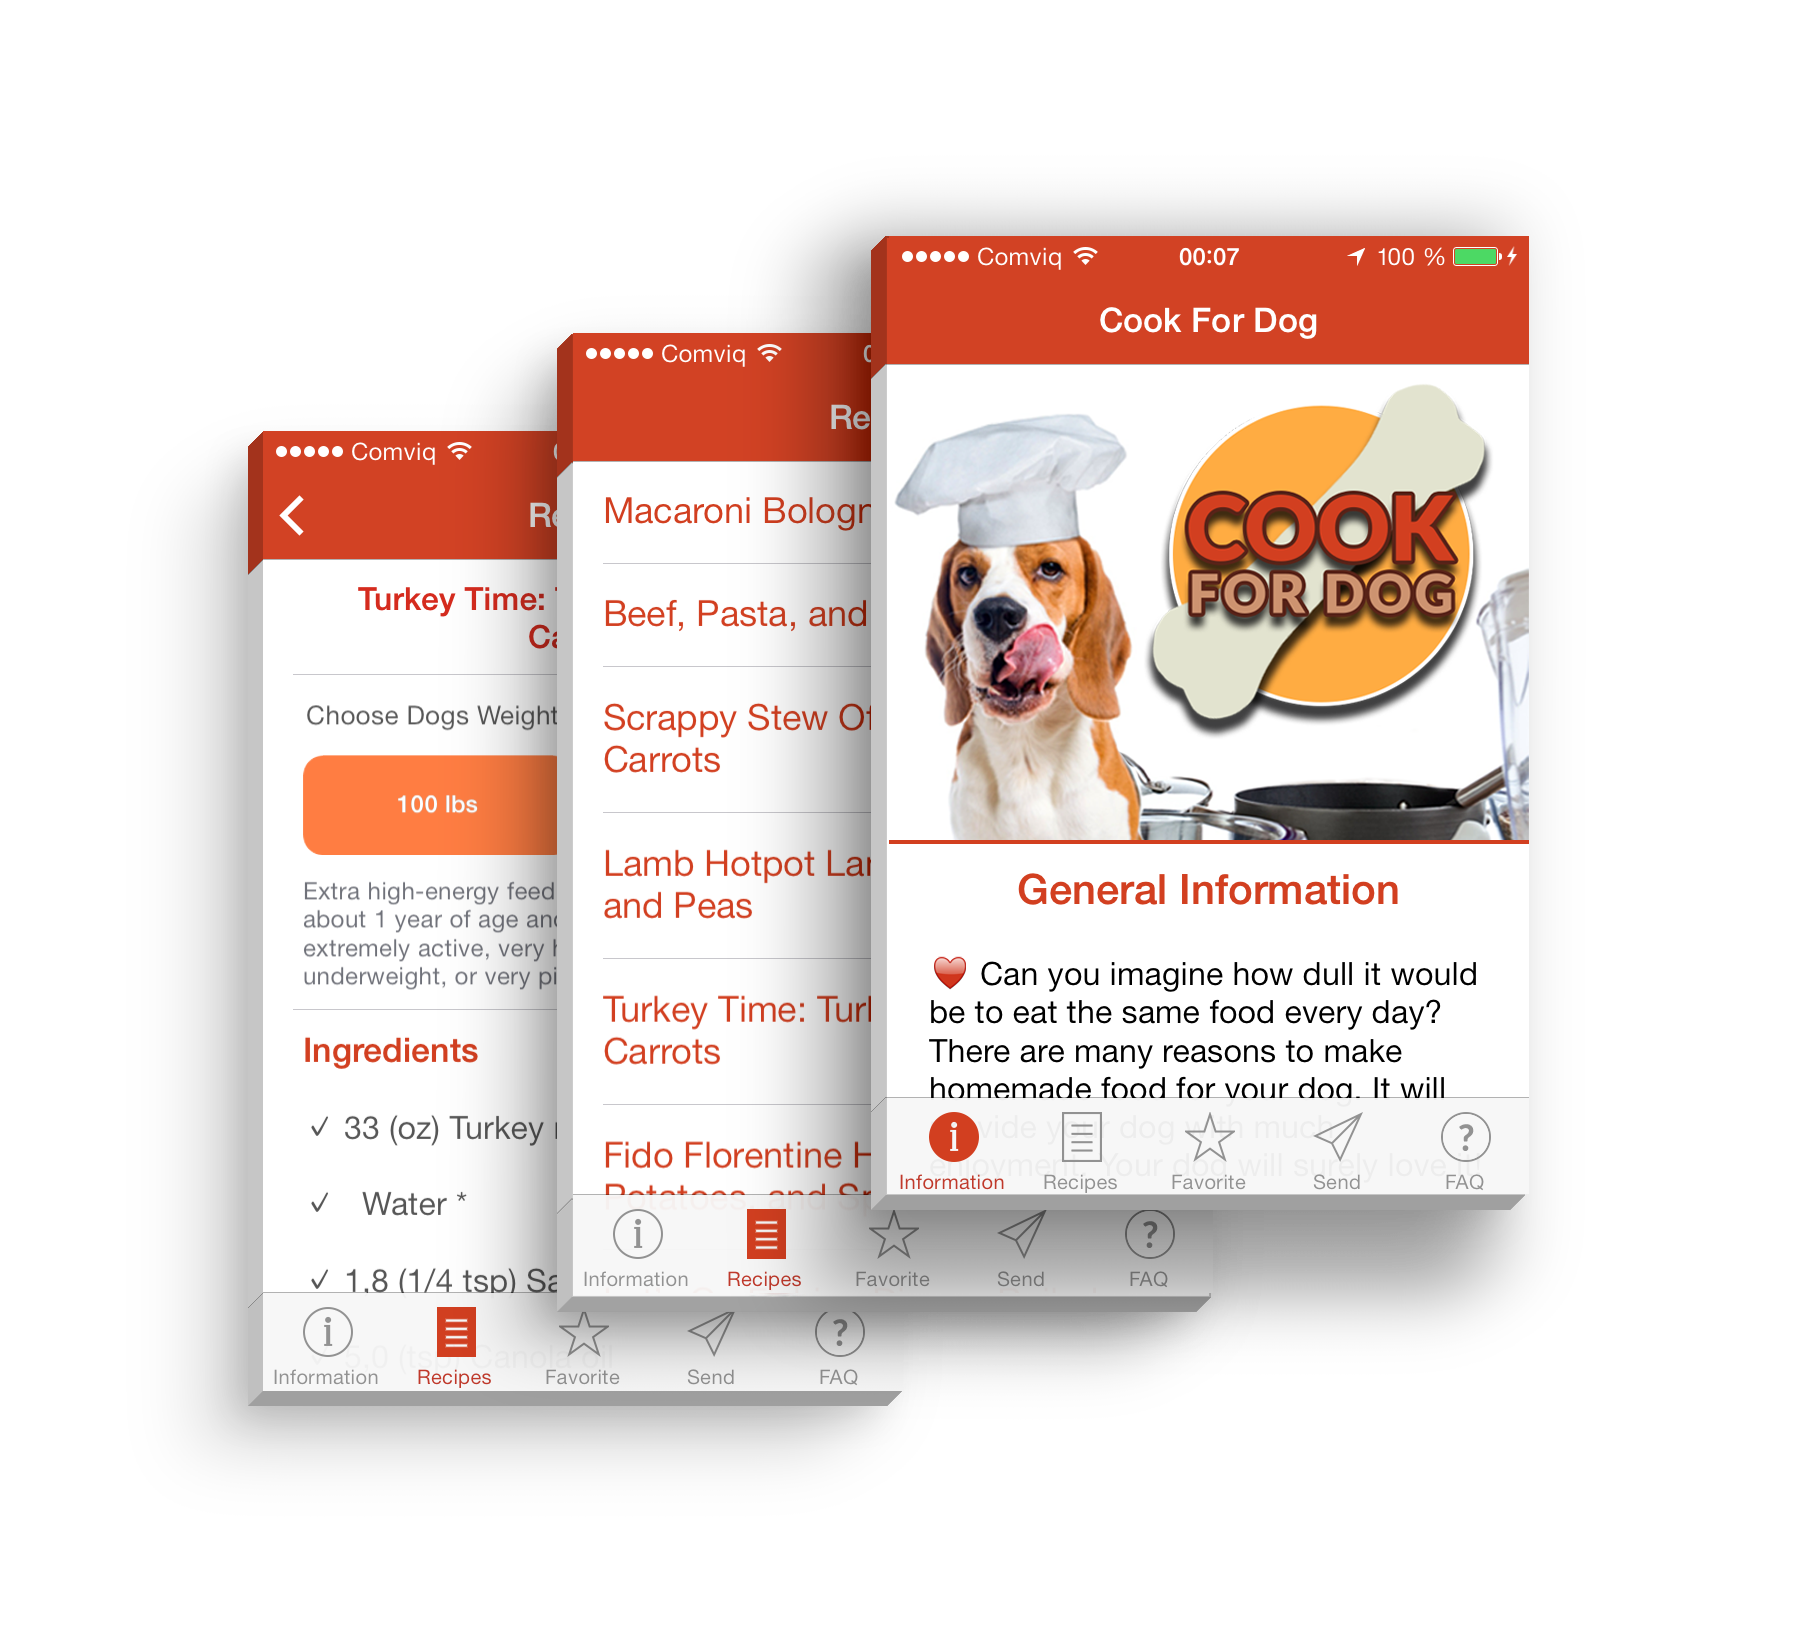 Cook-for-dog-App-Screen-Front-View-MockUp